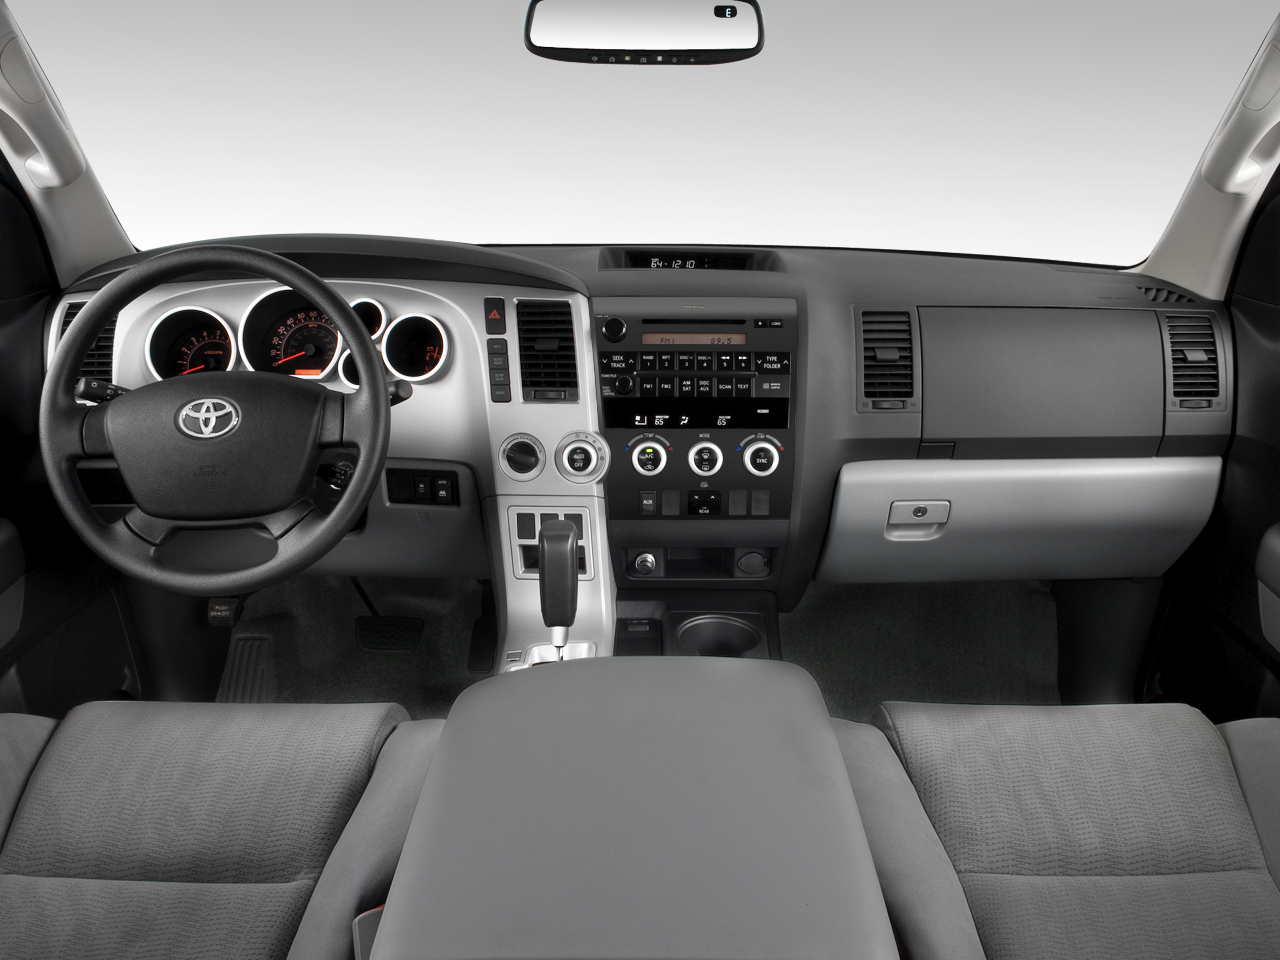 Toyota Sequoia interior #2